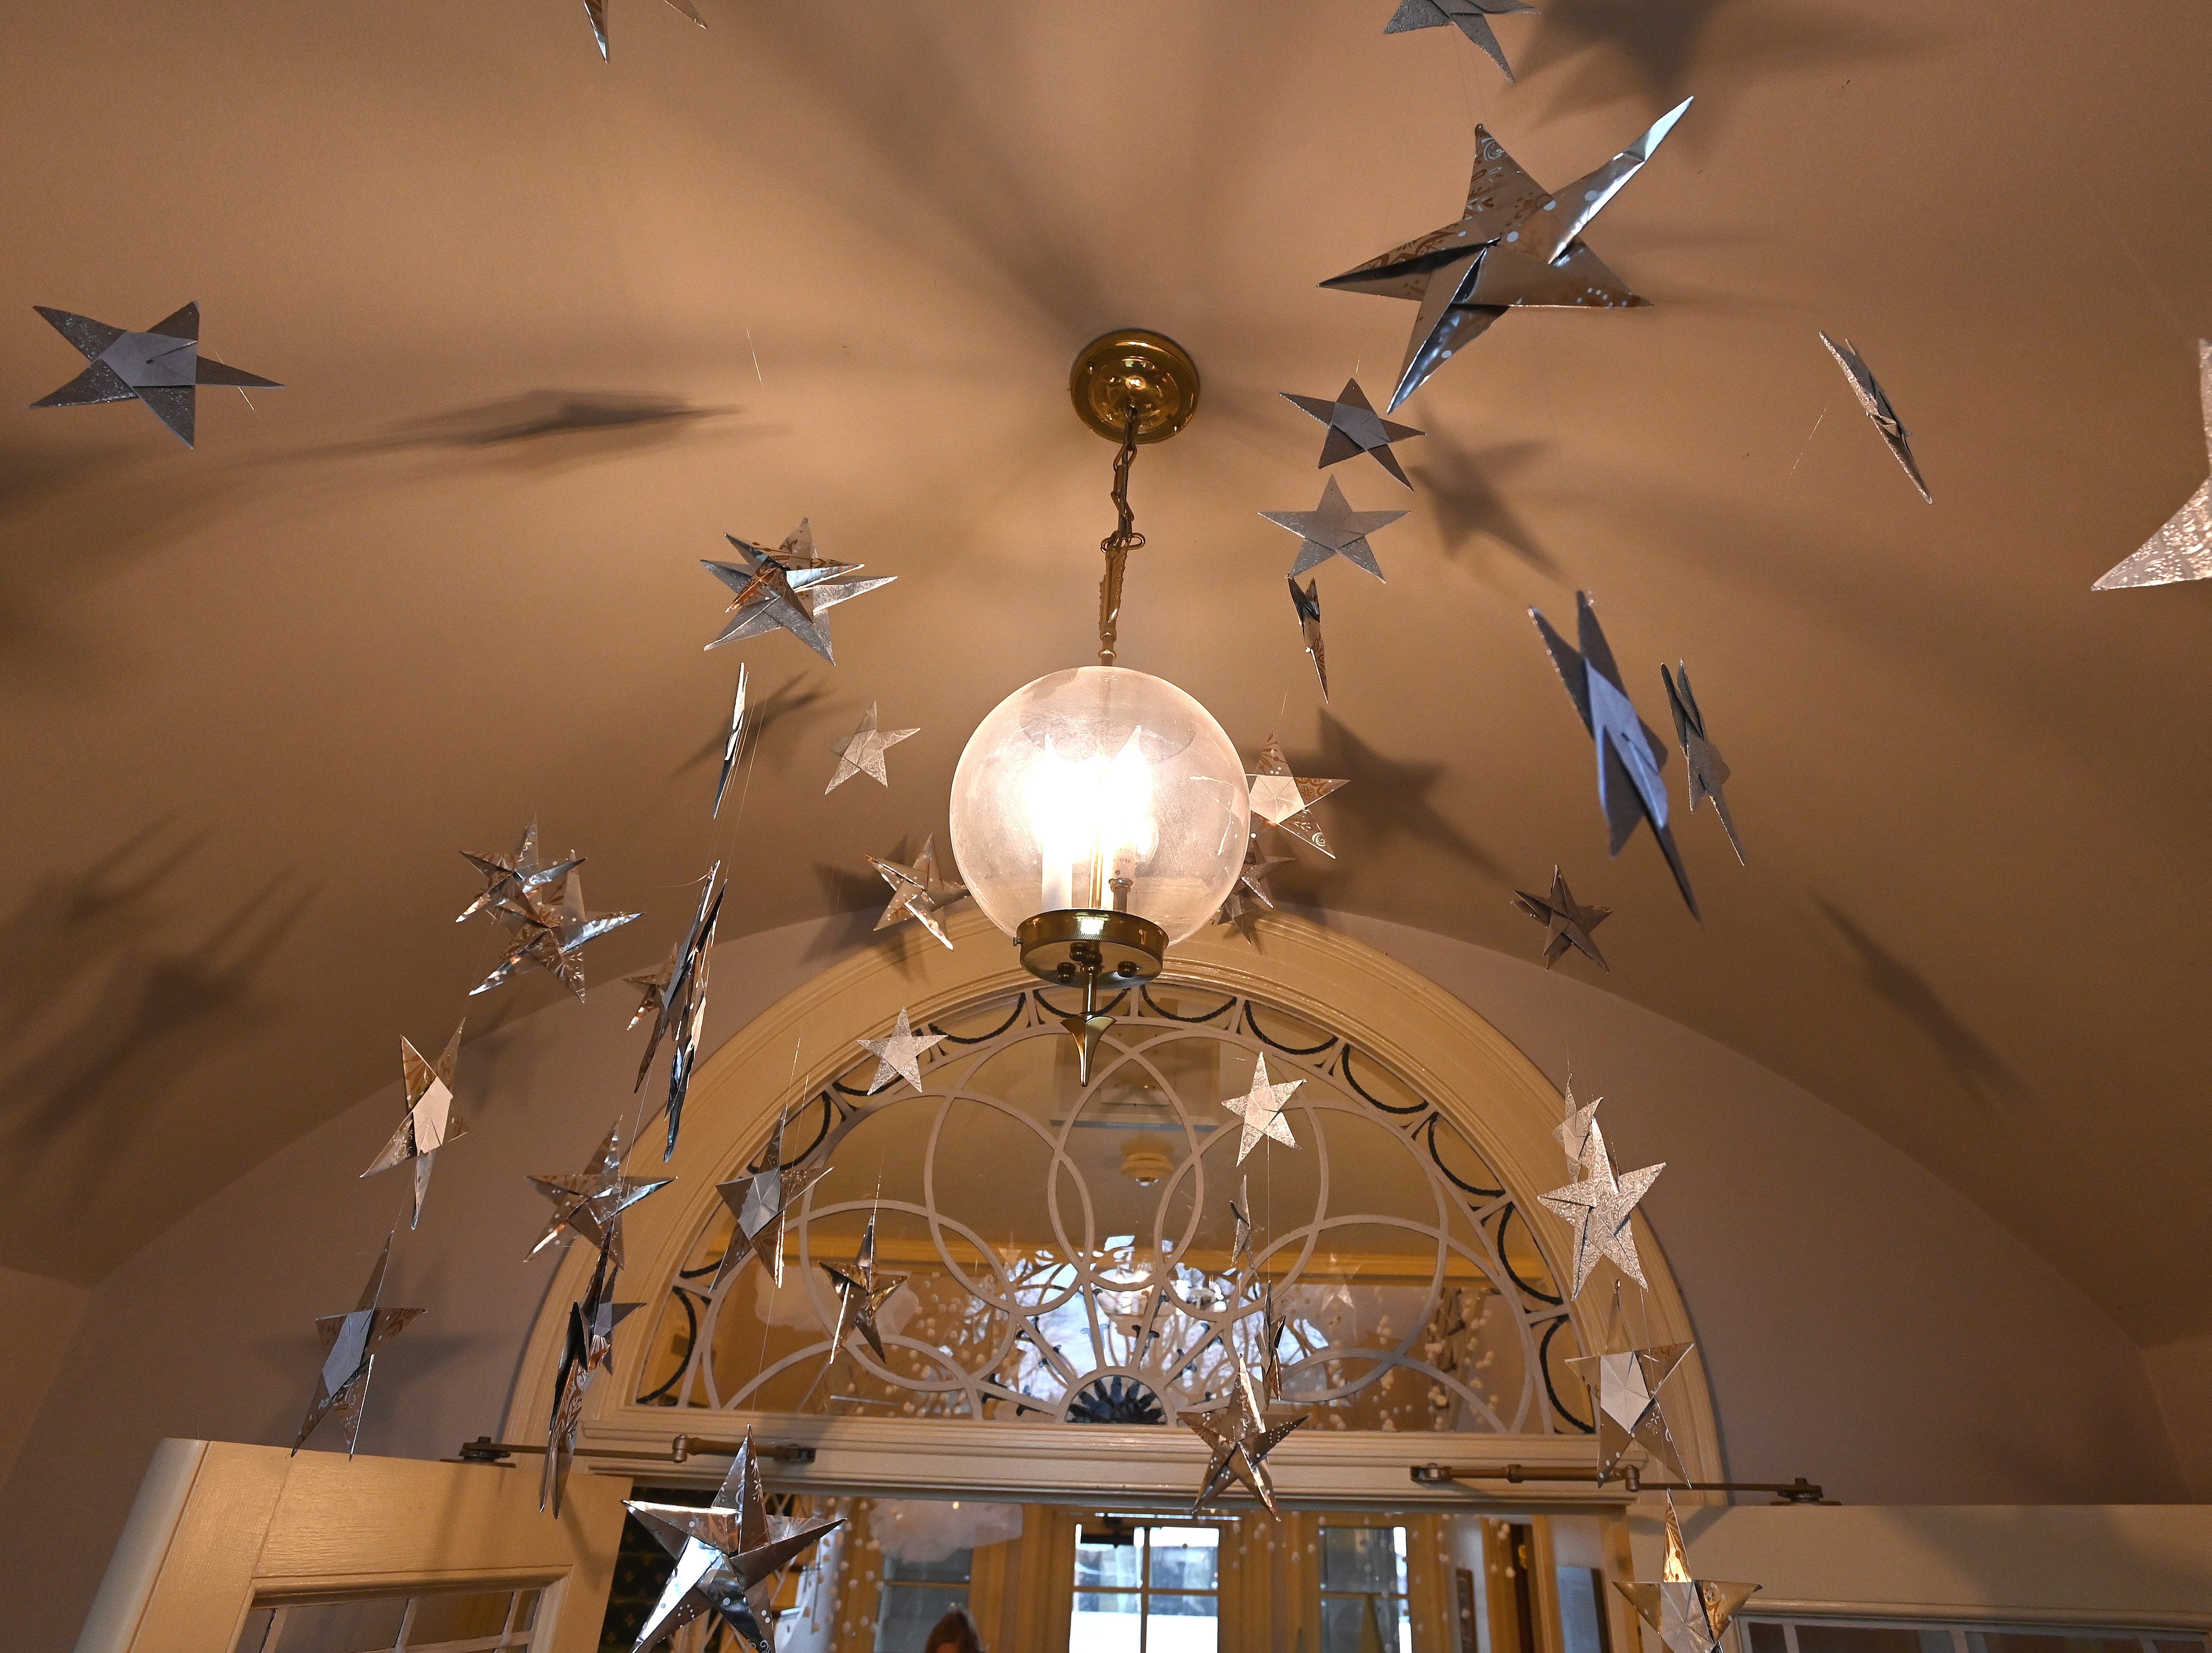 The entry greets visitors with whimsical stars hung from the ceiling.